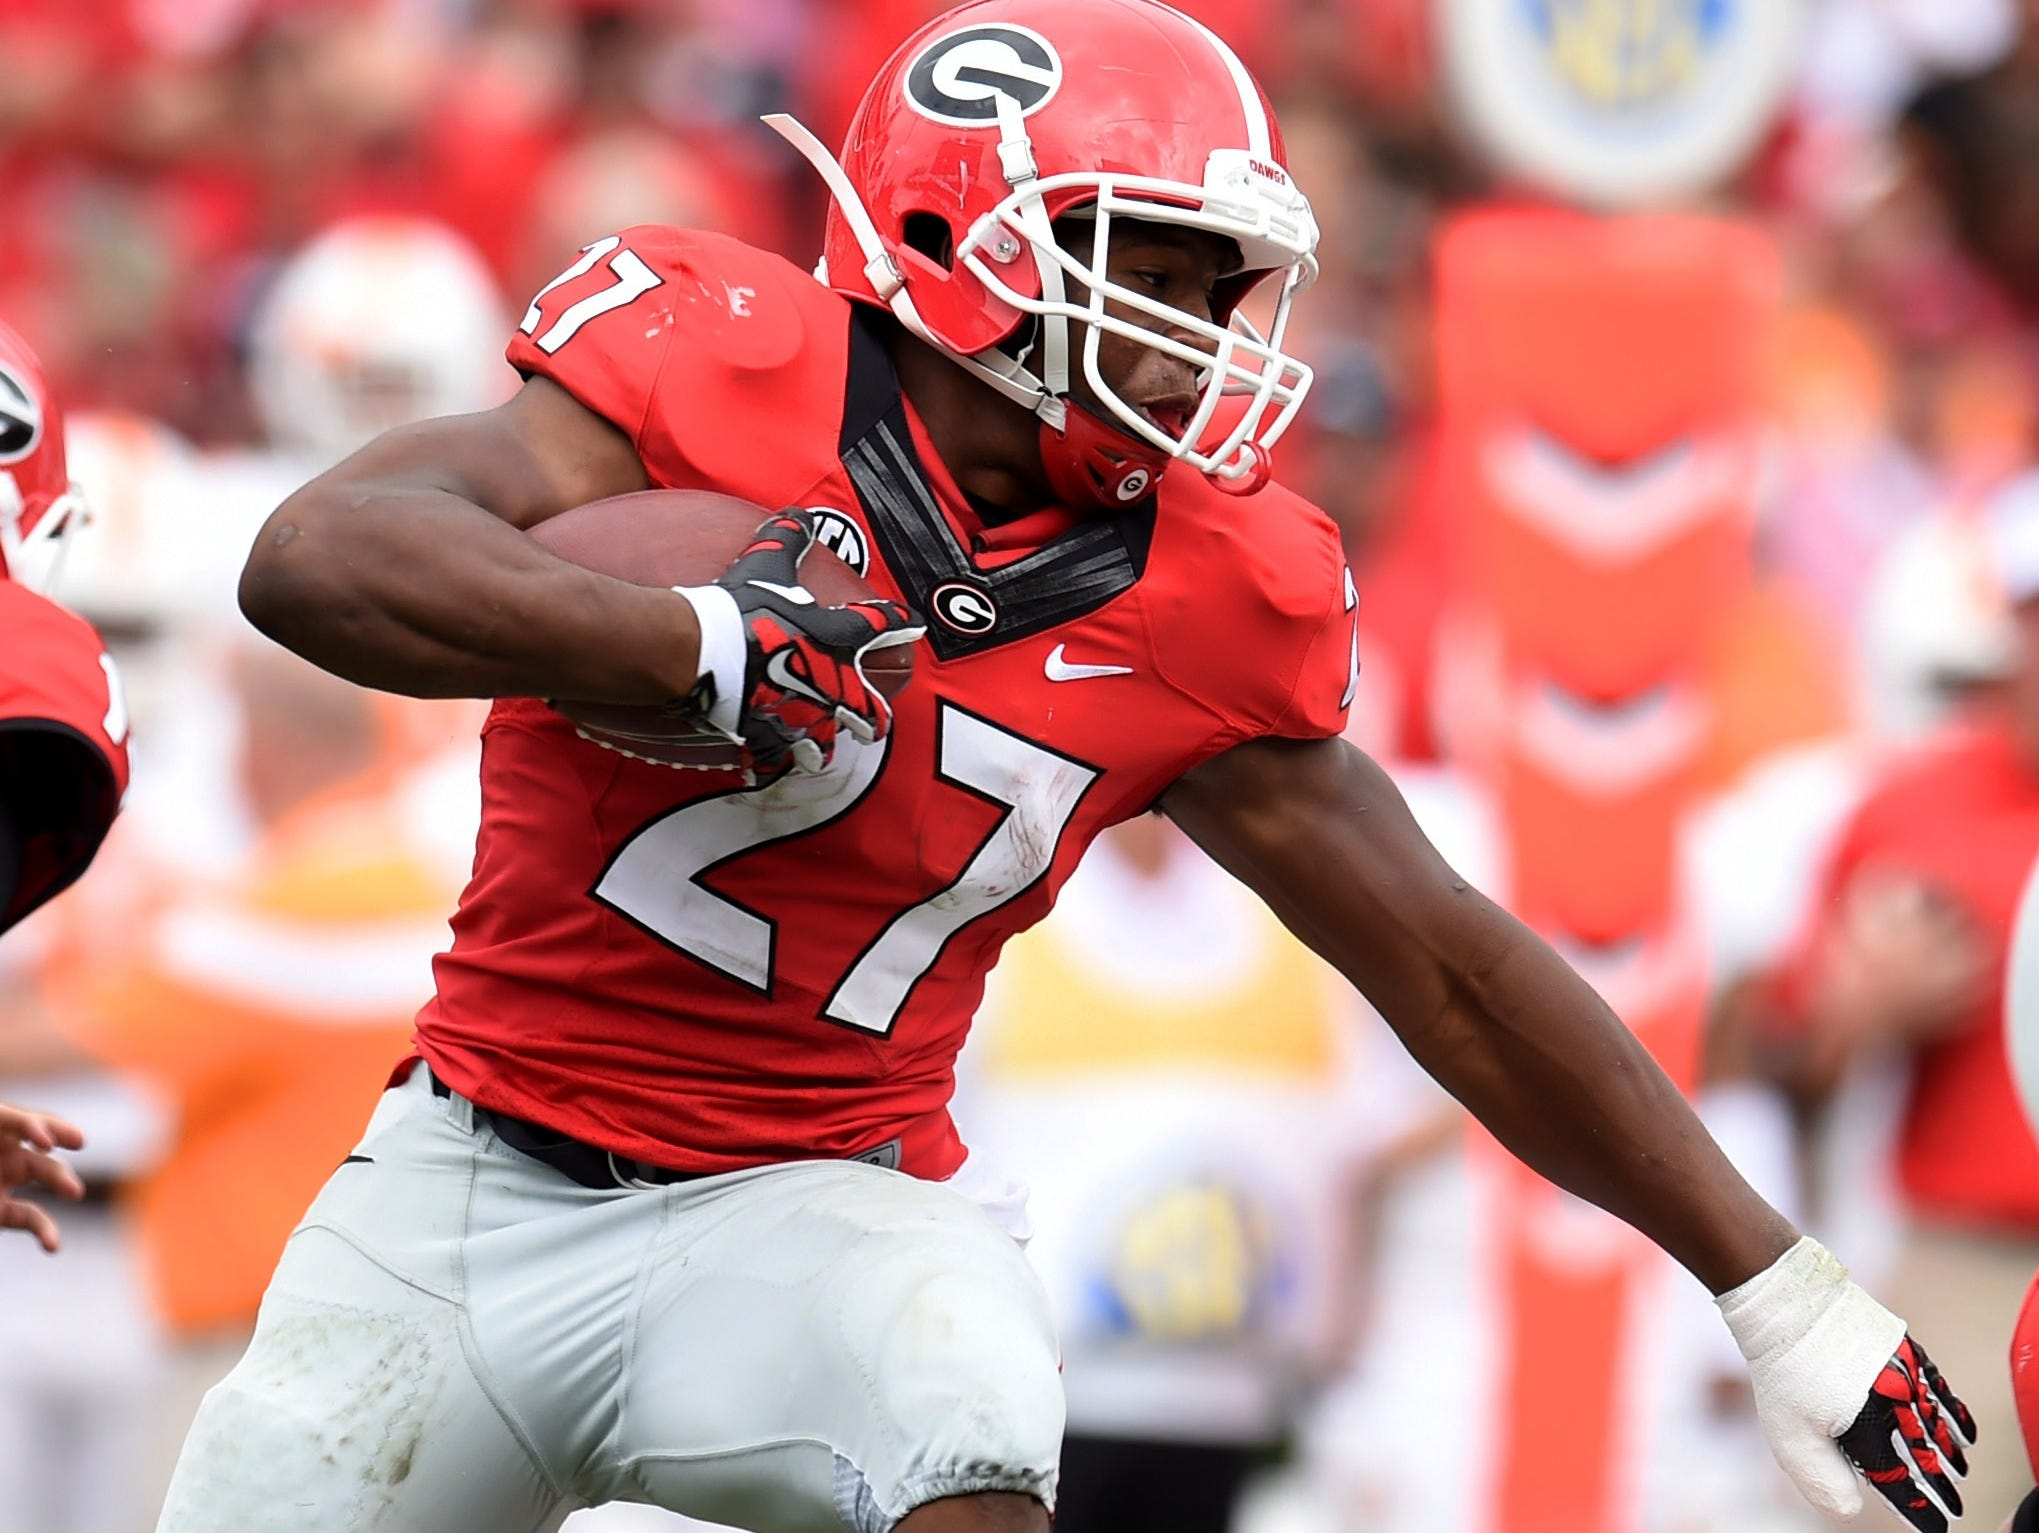 Paired with Sony Michel, running back Nick Chubb (27) gives Georgia one of the best rushing tandems in the SEC.